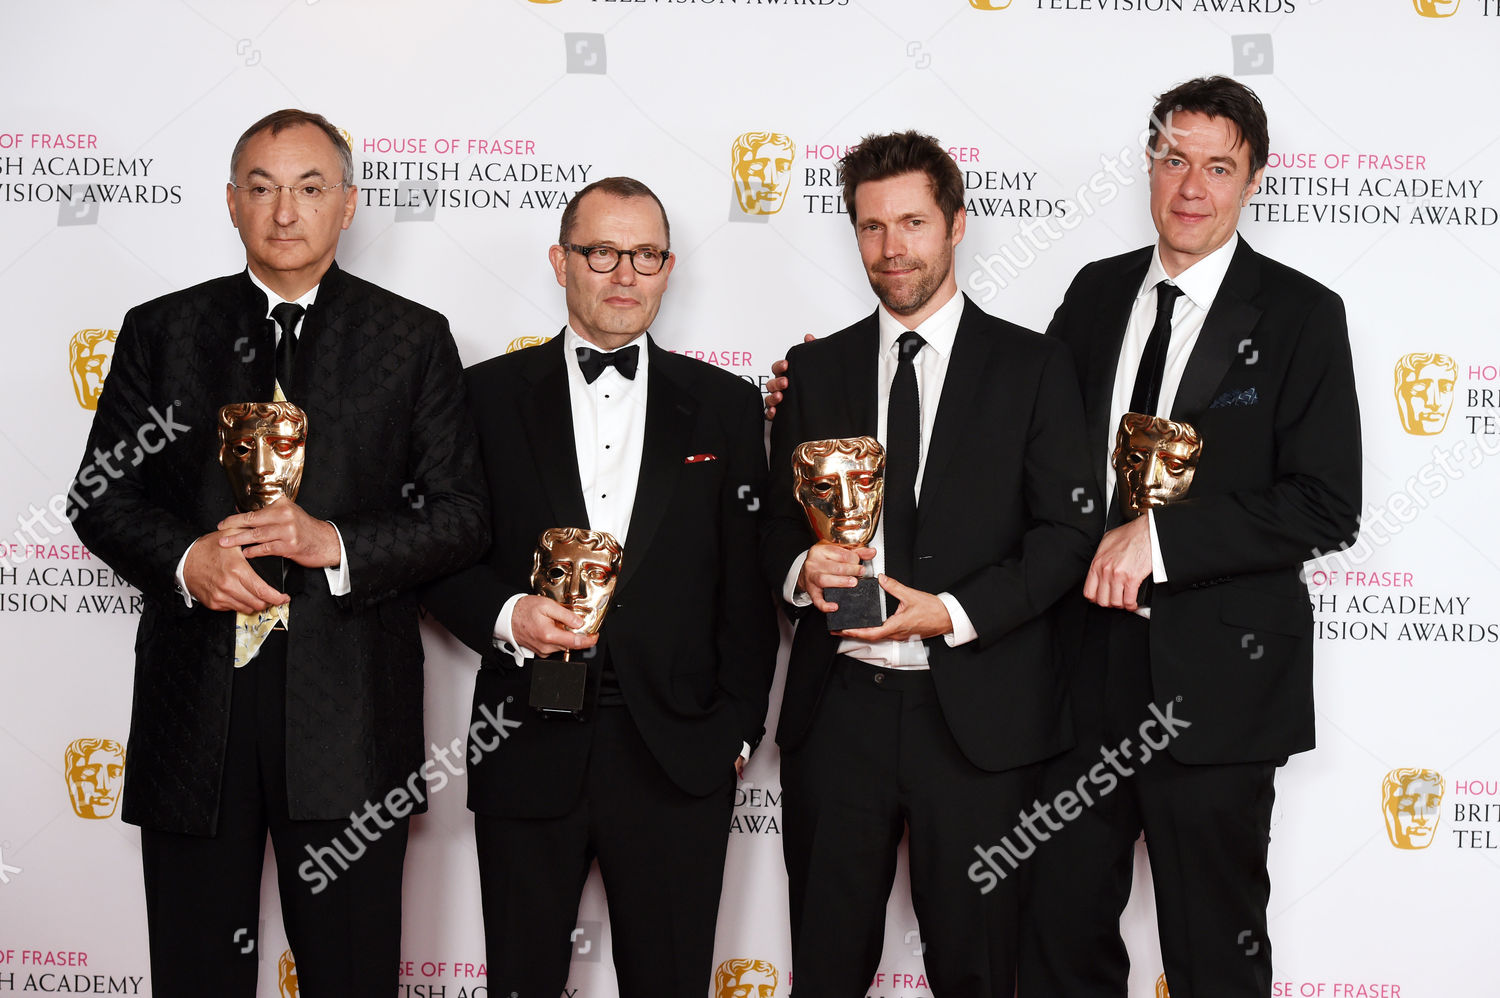 Stock photo of House of Fraser British Academy Television Awards, Press Room, Royal Festival Hall, London, Britain - 08 May 2016